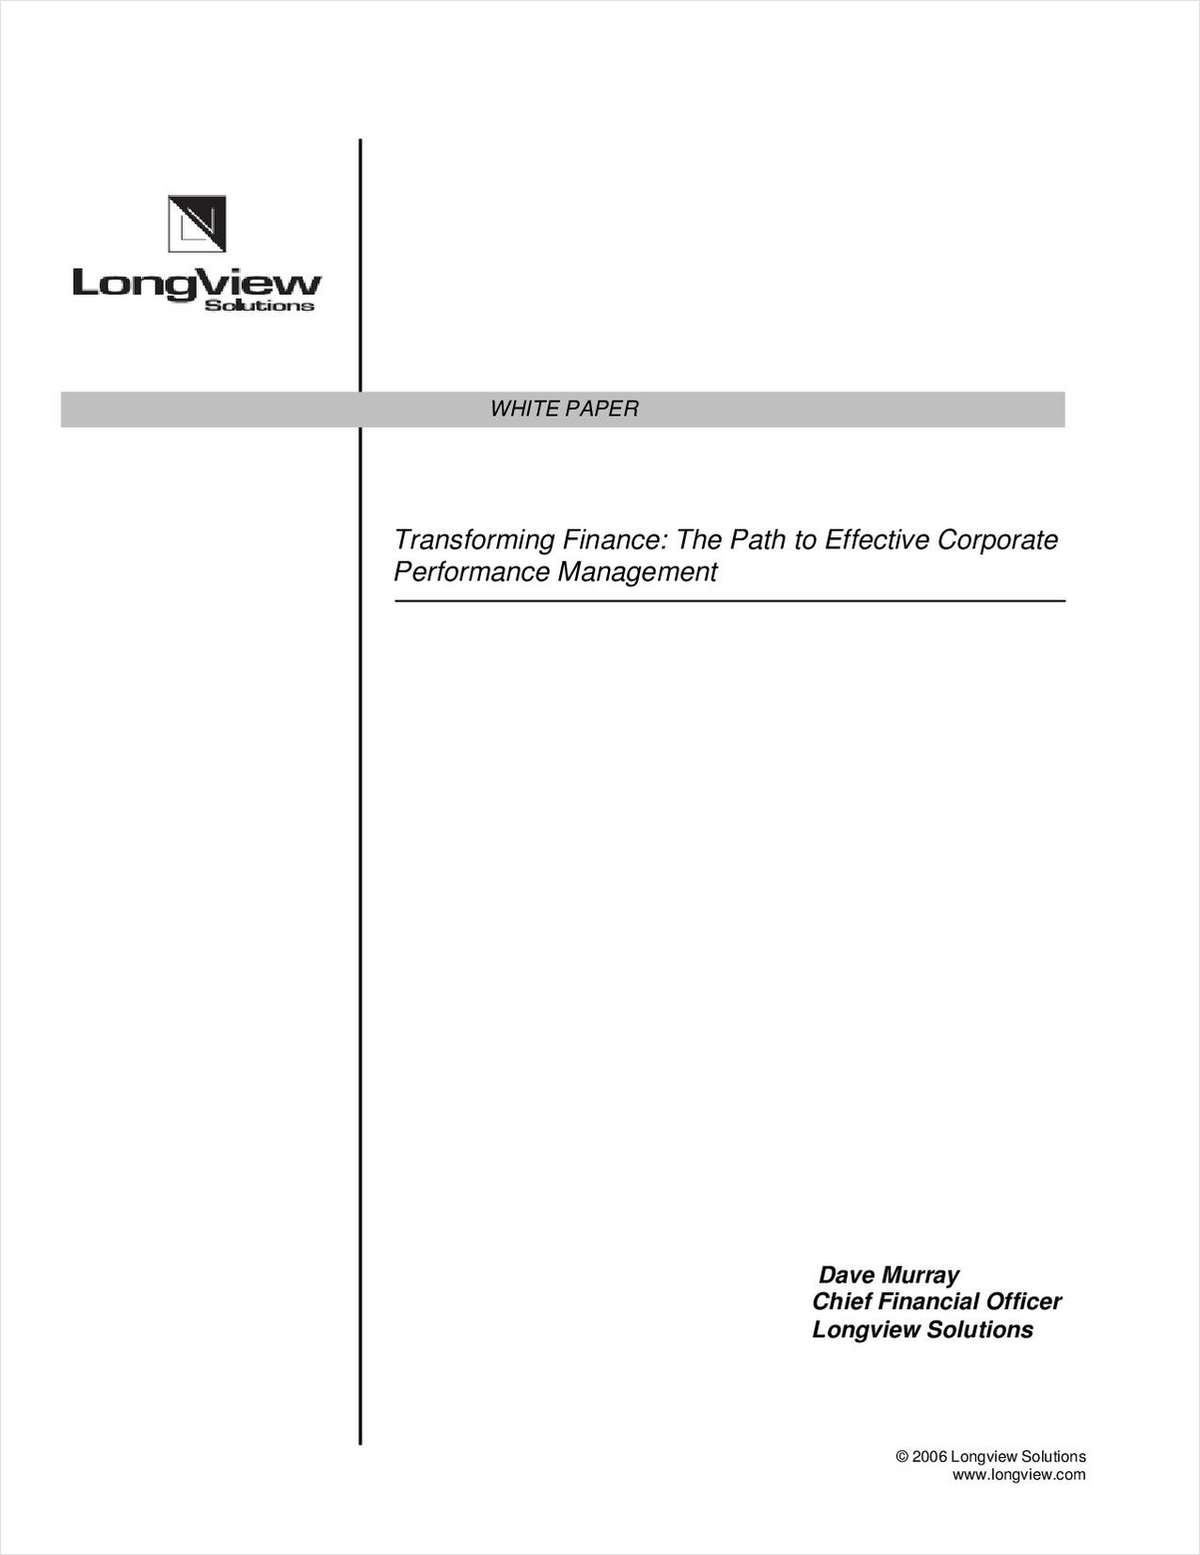 Transforming Finance: The Path to Effective Corporate Performance Management